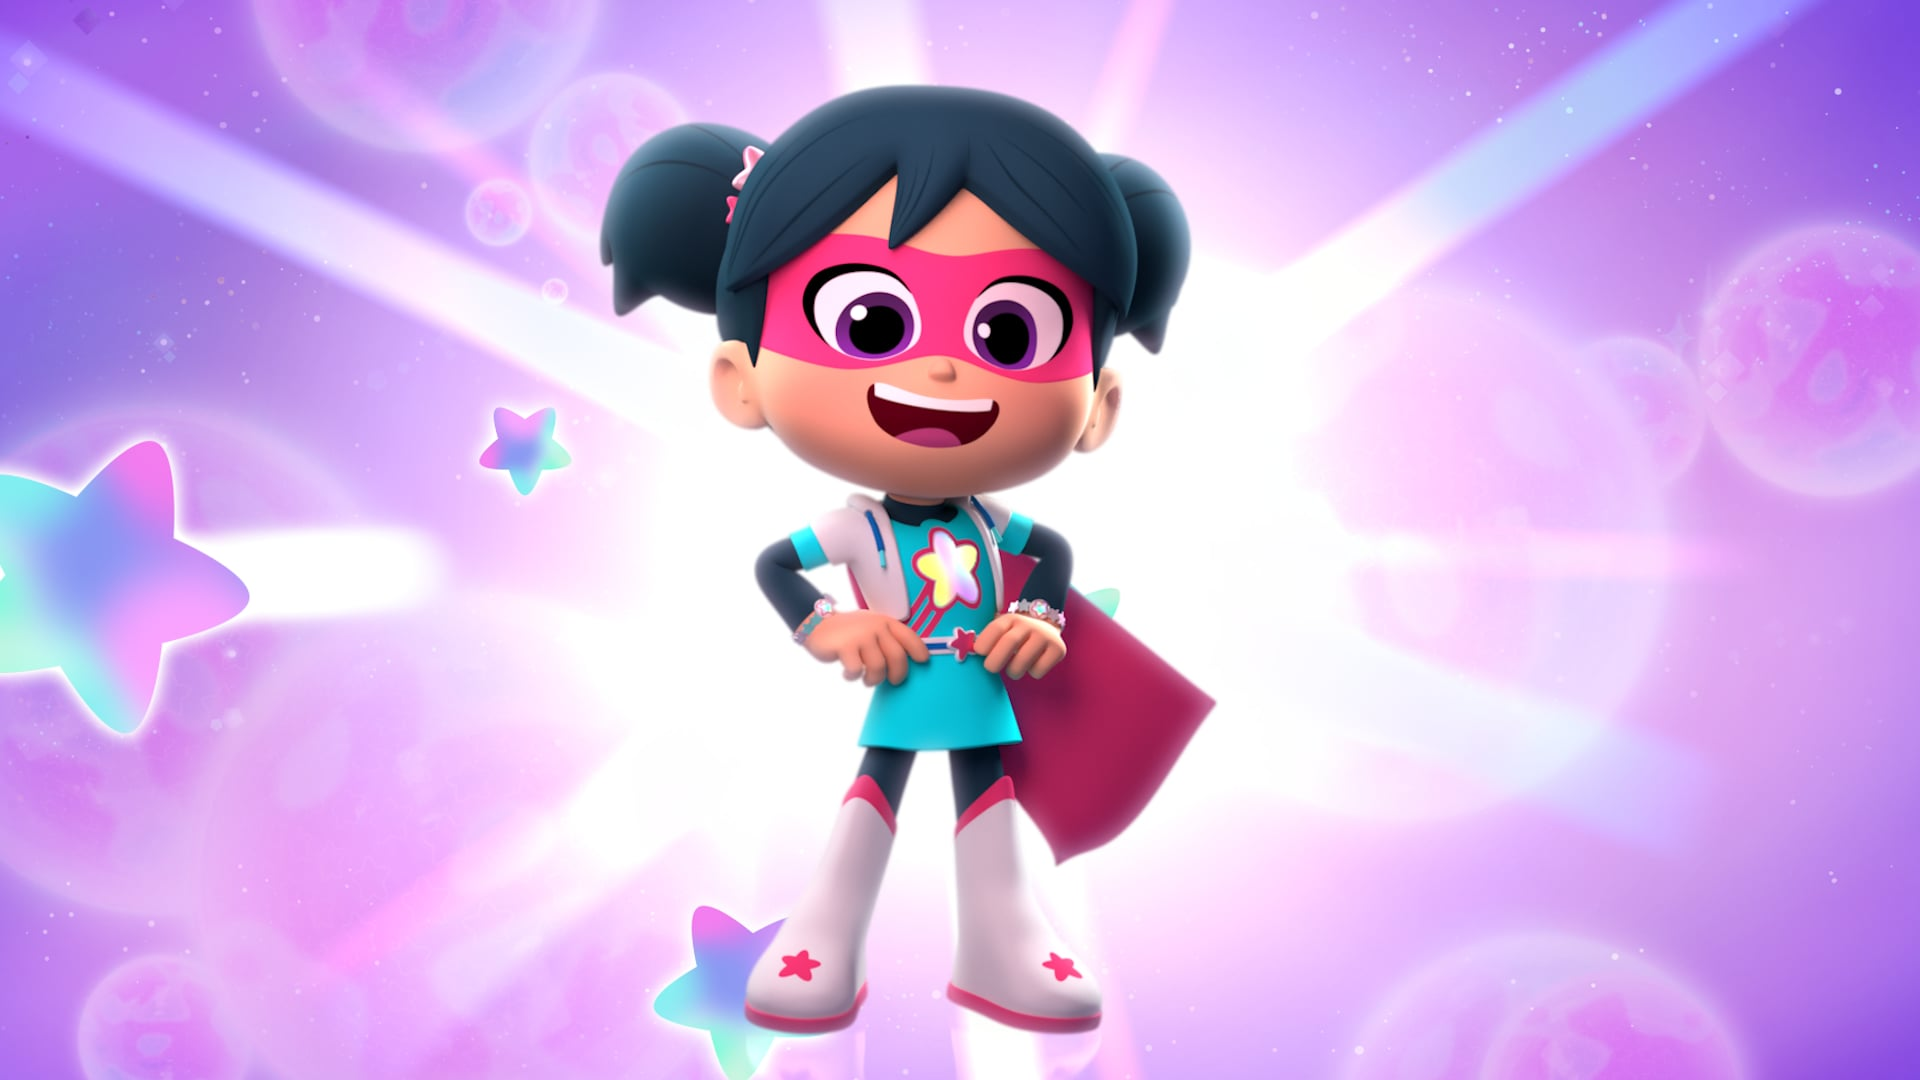 StarBeam 3: Release Date, Trailer, Cast and Latest Updates!